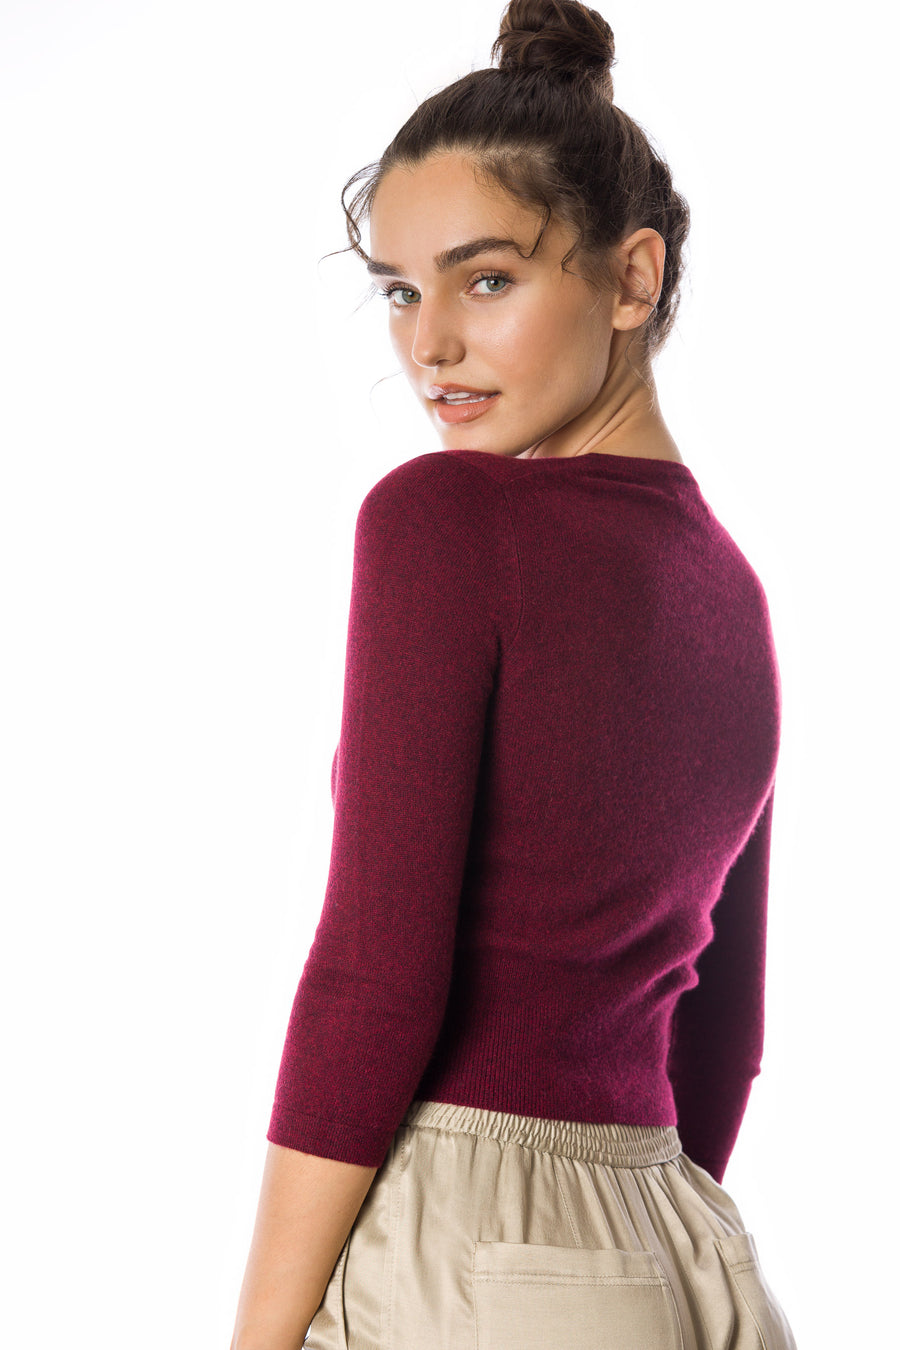 Sustainable Cashmere Cropped Cardigan - Rich Red - Dongli Cashmere